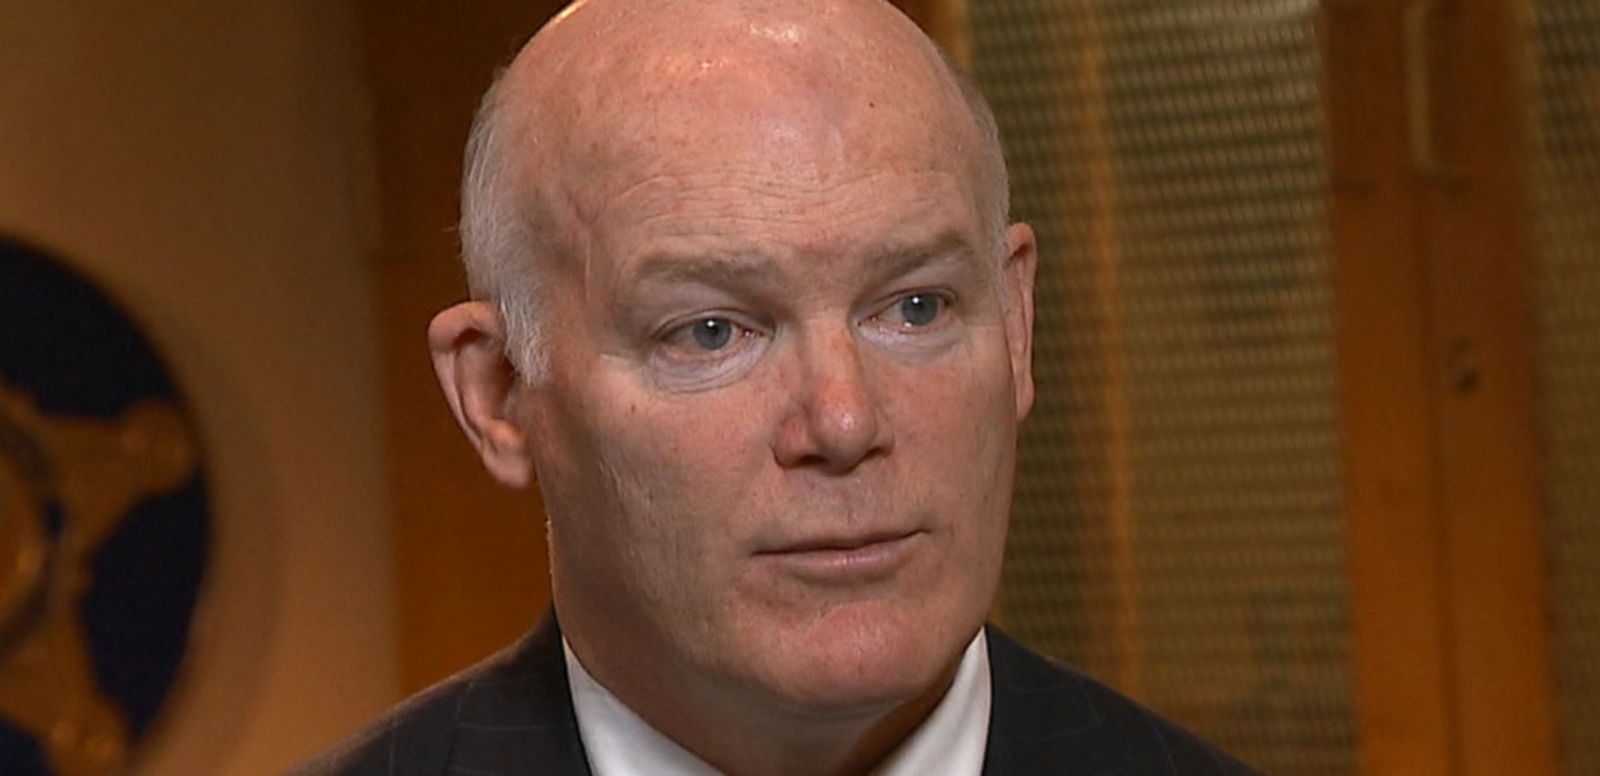 VIDEO: Secret Service Director on Protecting the President